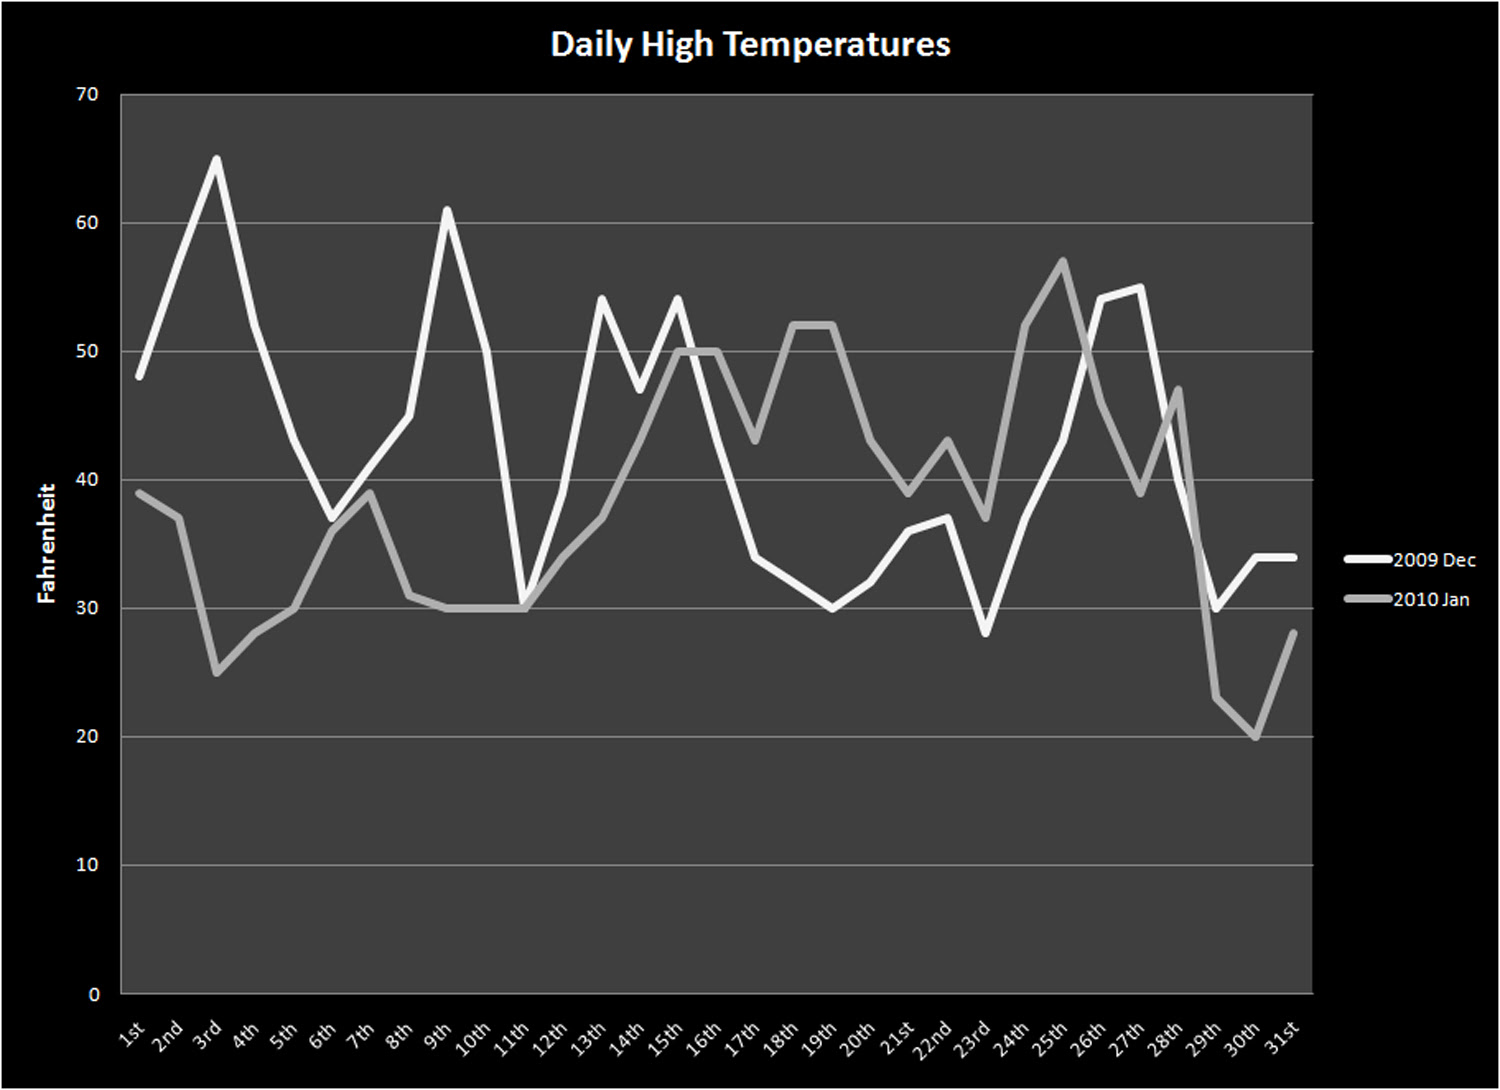 High Temperatures Dec 2009 vs. Jan 2010